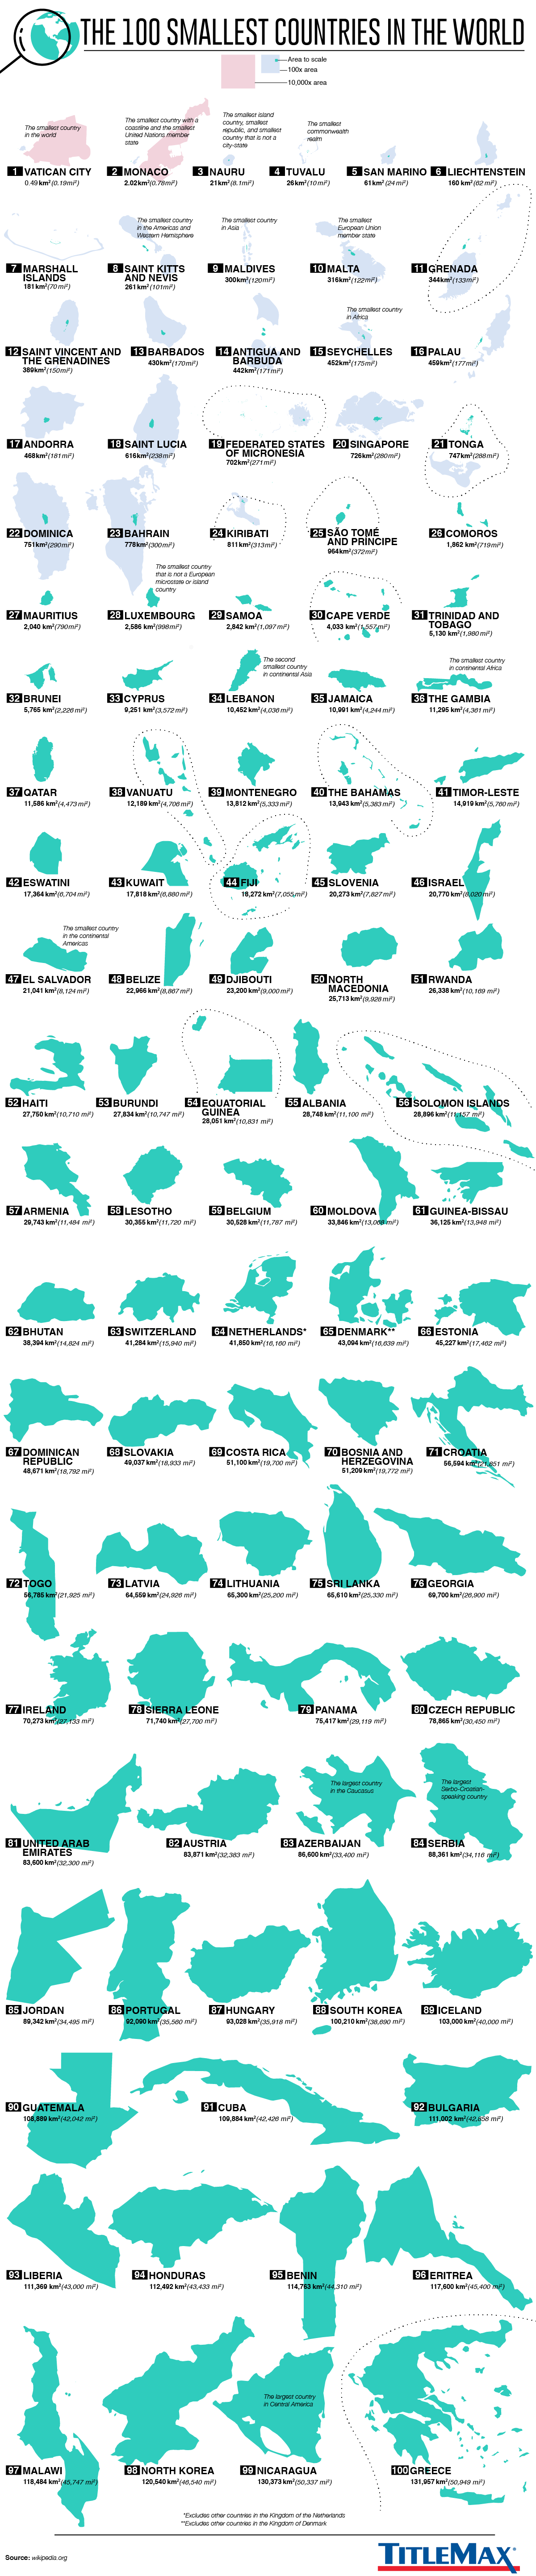 Visualized: The World's 100 Smallest Countries